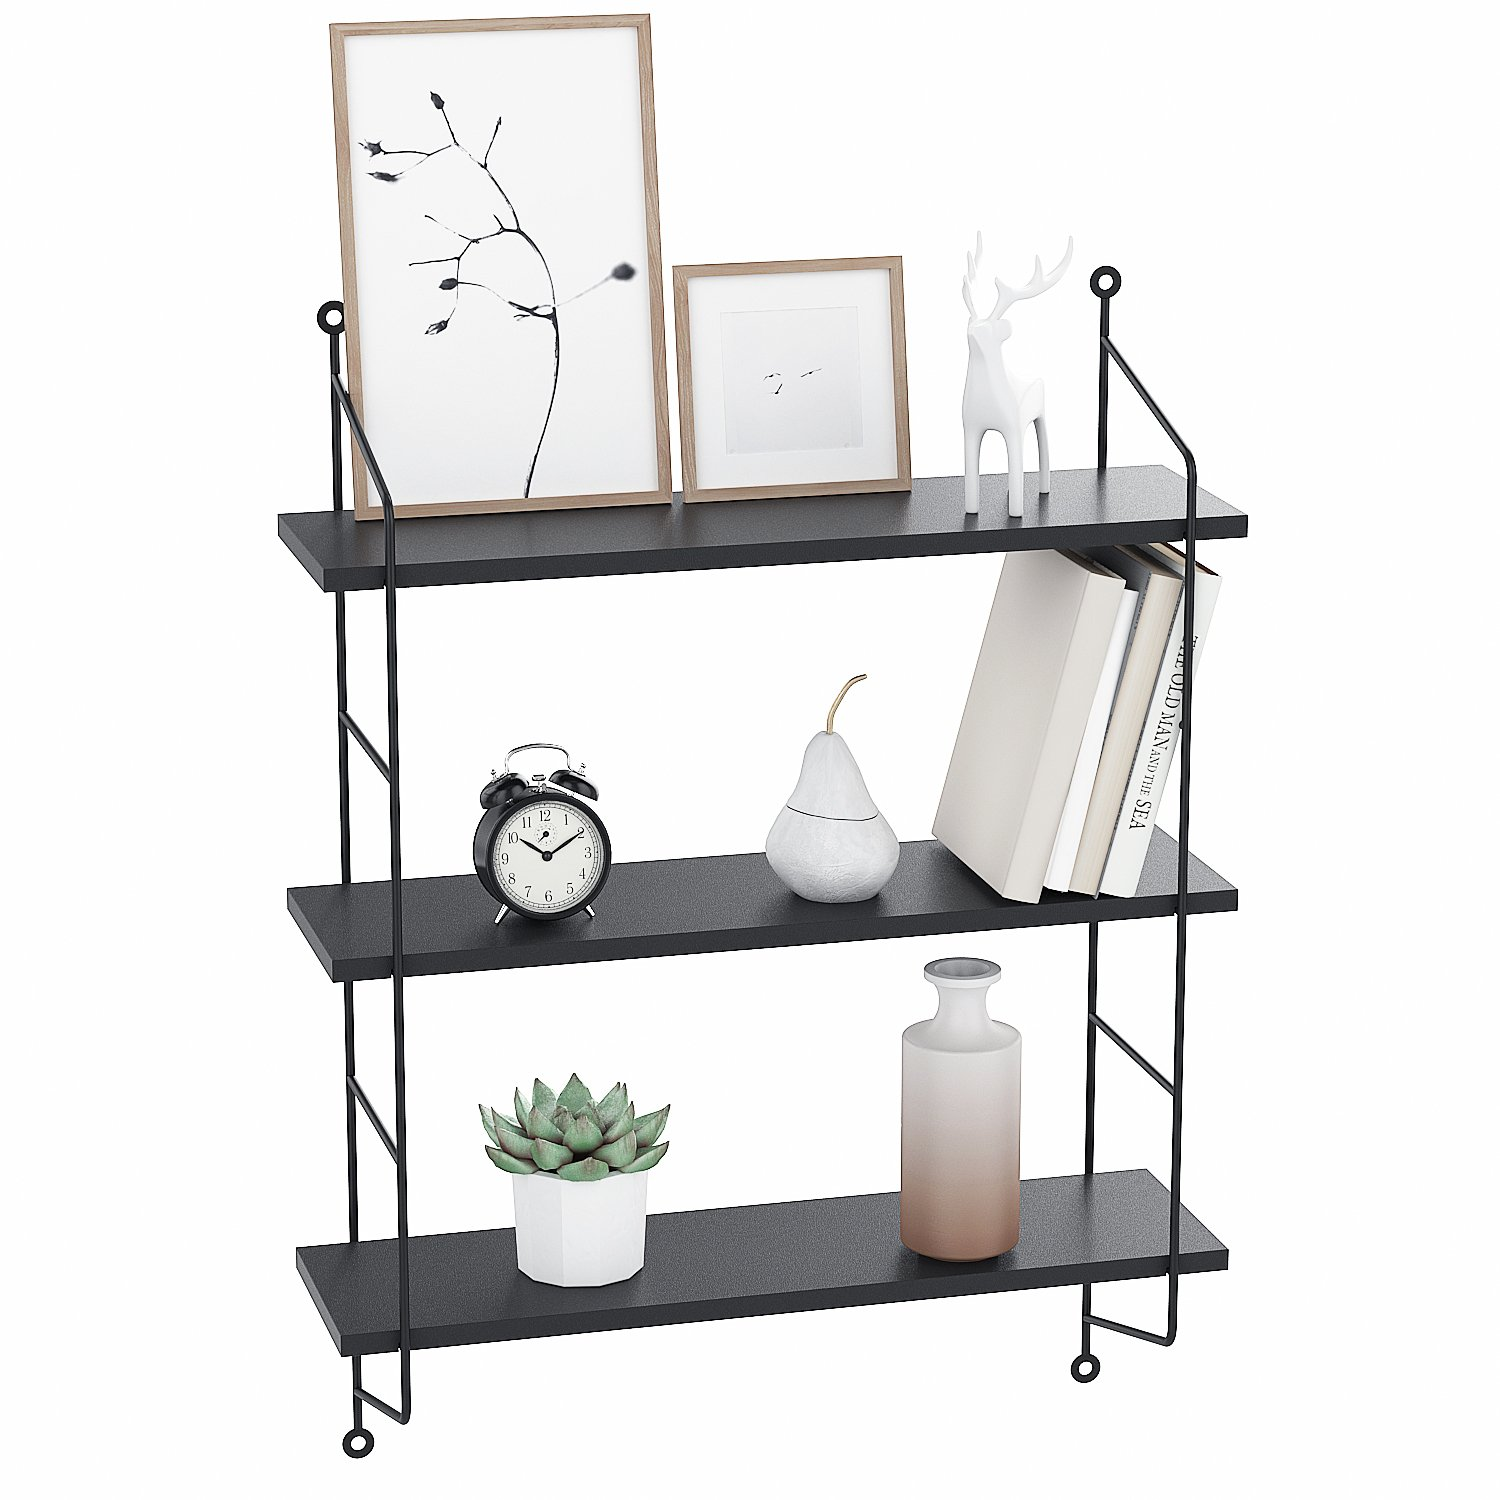 Floating Shelves Wall Mounted, Industrial Metal Frame Wood Wall Storage  Shelves For Bedroom, Living Room, Bathroom, Kitchen, Office And More, 3